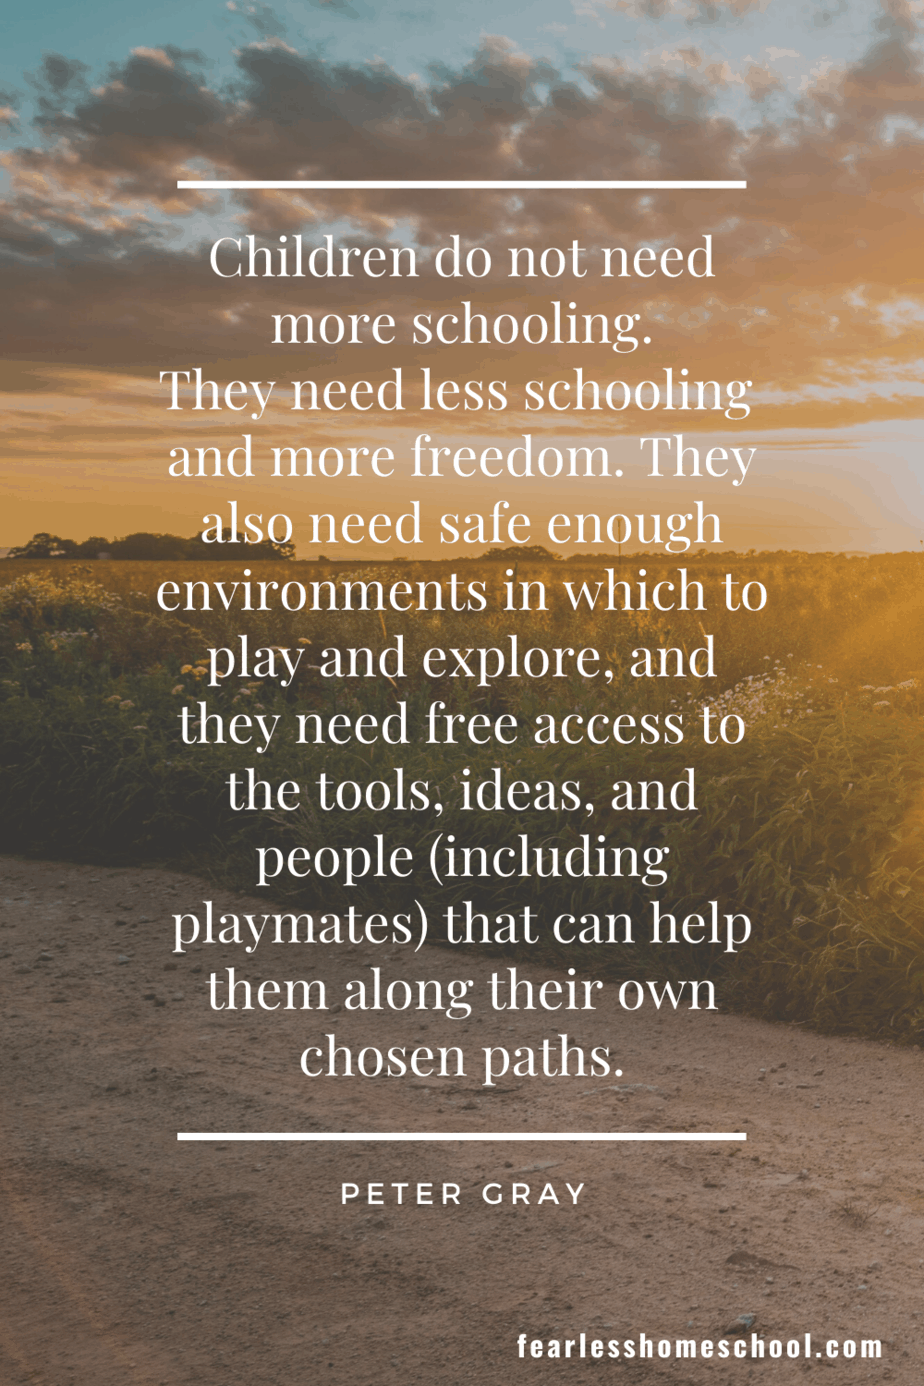 Children do not need more schooling. They need less schooling and more freedom. They also need safe enough environments in which to play and explore, and they need free access to the tools, ideas, and people (including playmates) that can help them along their own chosen paths. peter gray